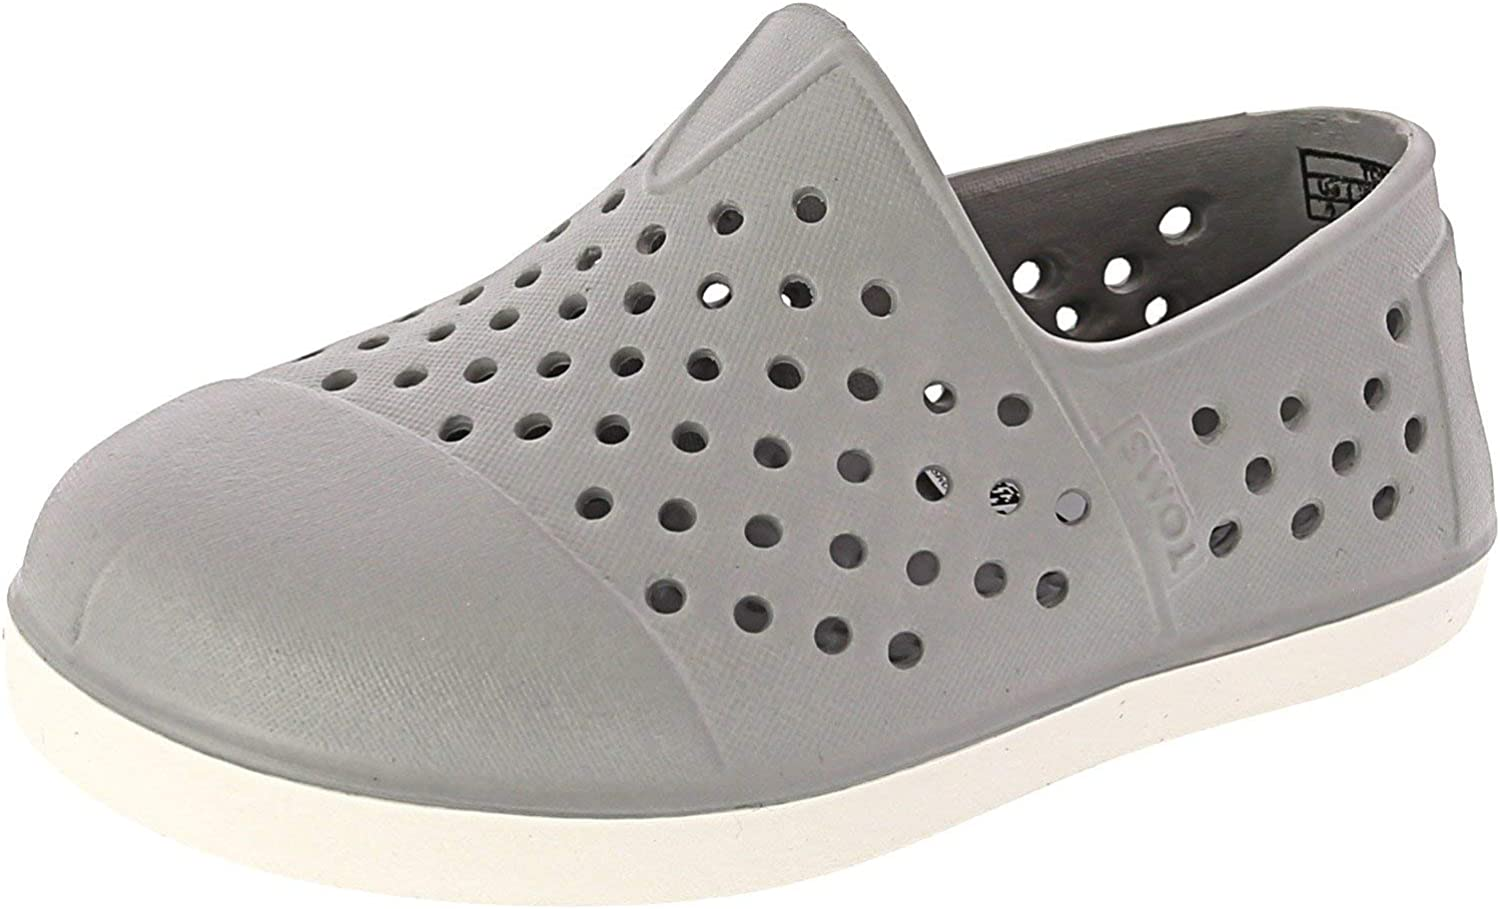 Mail order TOMS Max 89% OFF Unisex-Child Slip-on Shoe Water